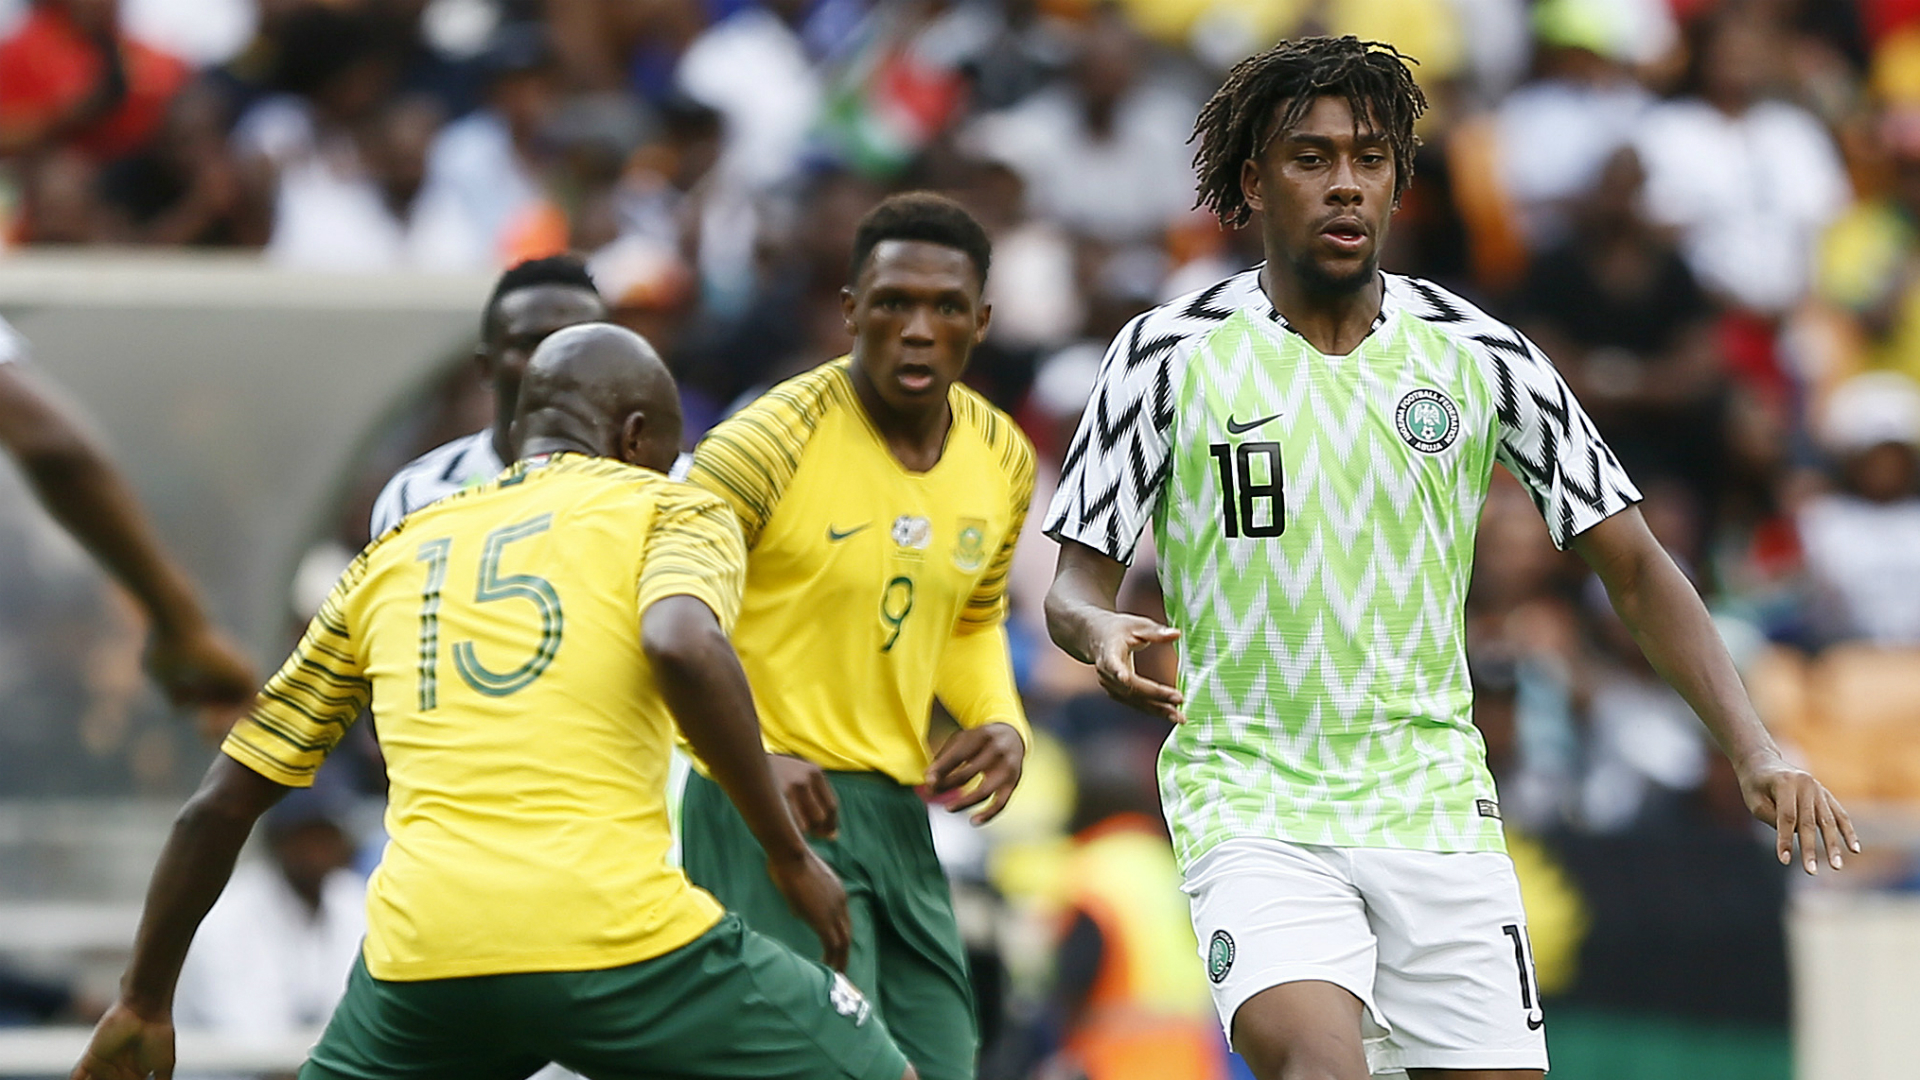 Afcon 2019: Nigeria v South Africa: Kick off, TV channel